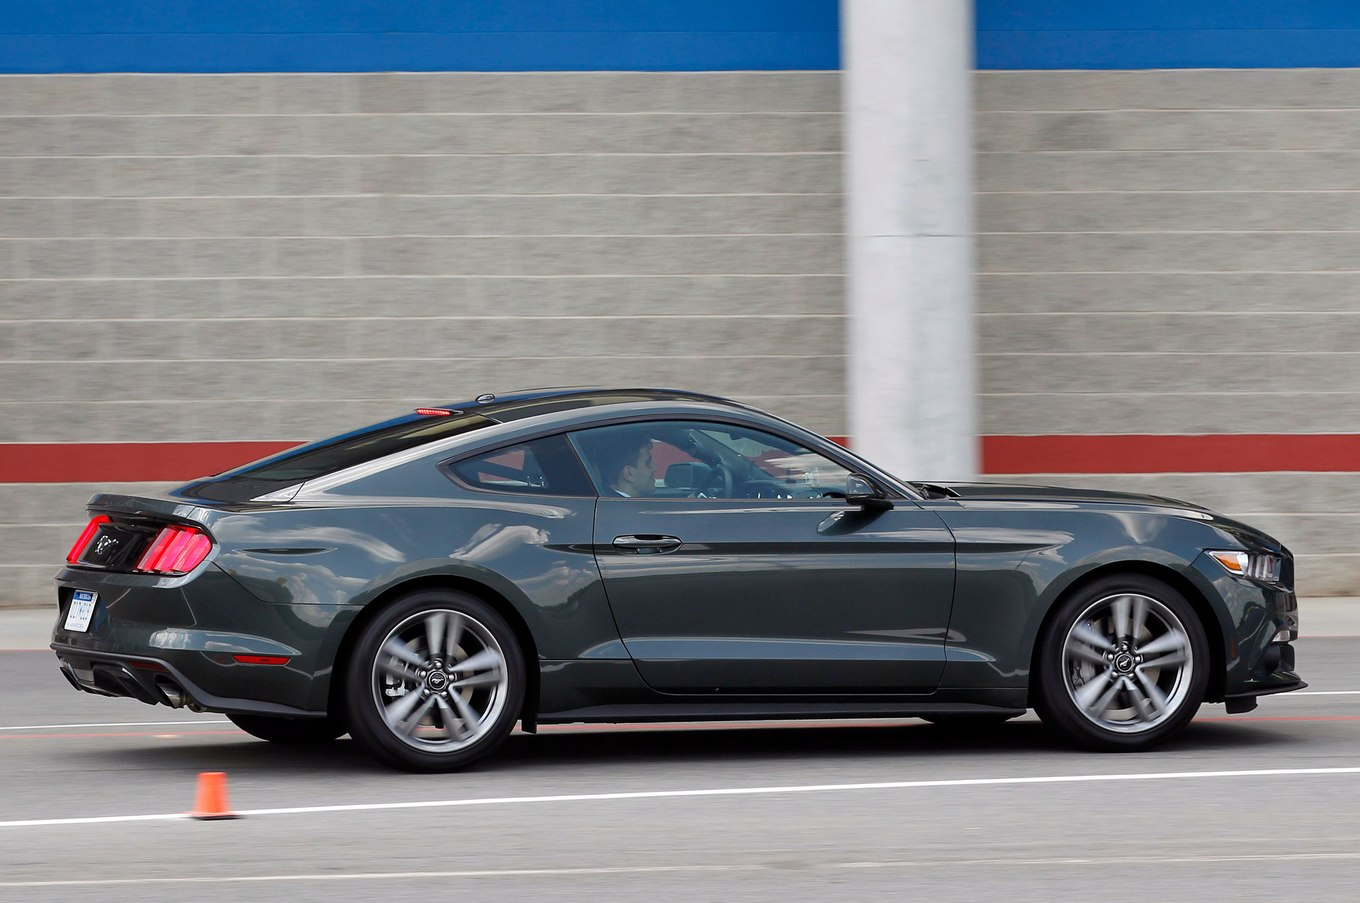 Pic Request of Ford Racing Ecoboost 19 Nickel PP Wheels from